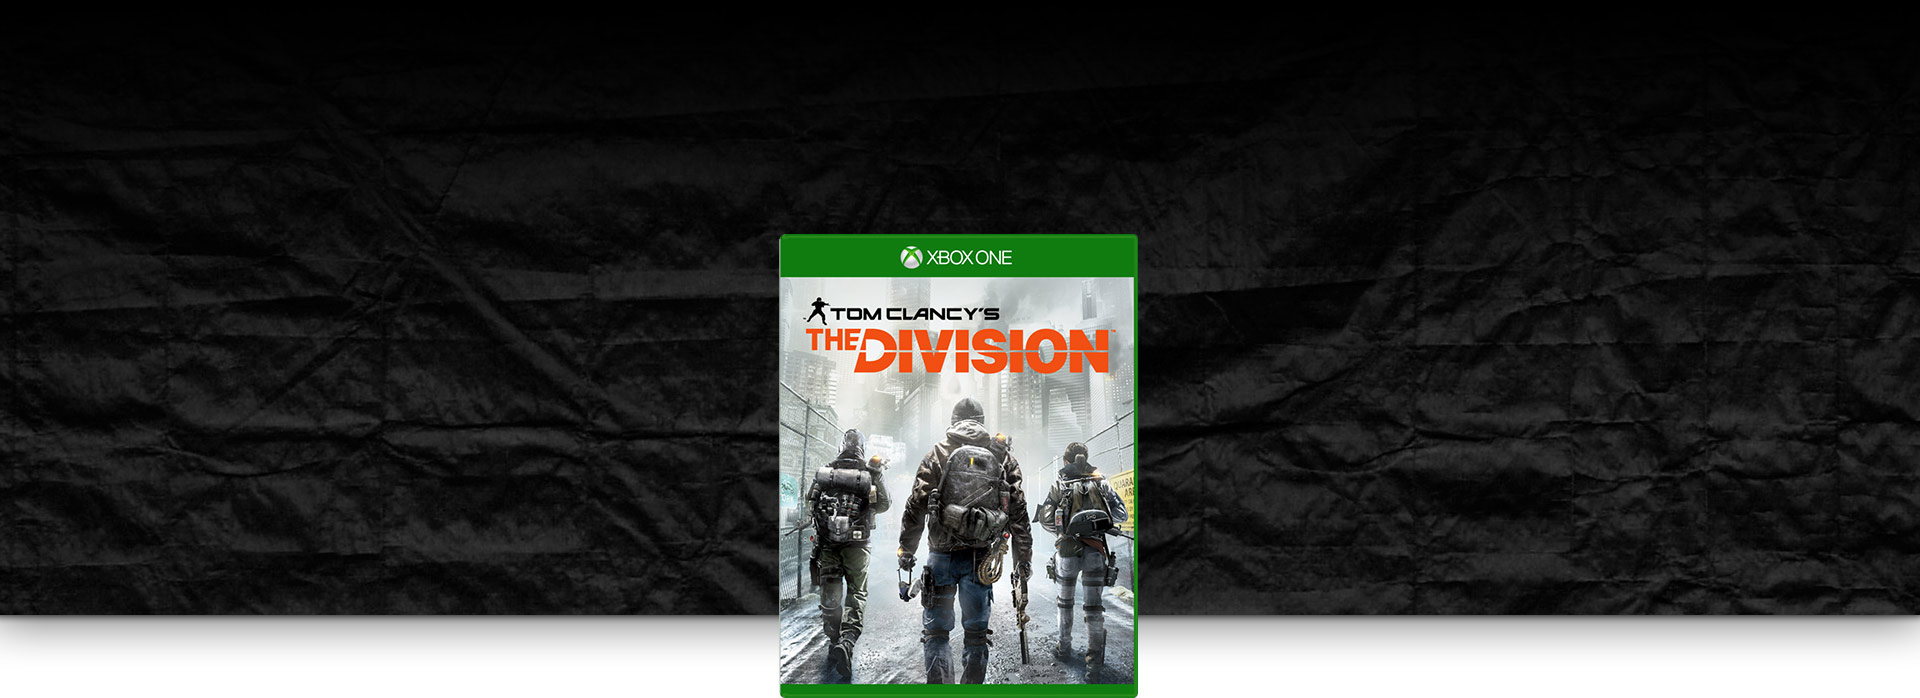 Tom Clancy's Division 外包裝圖